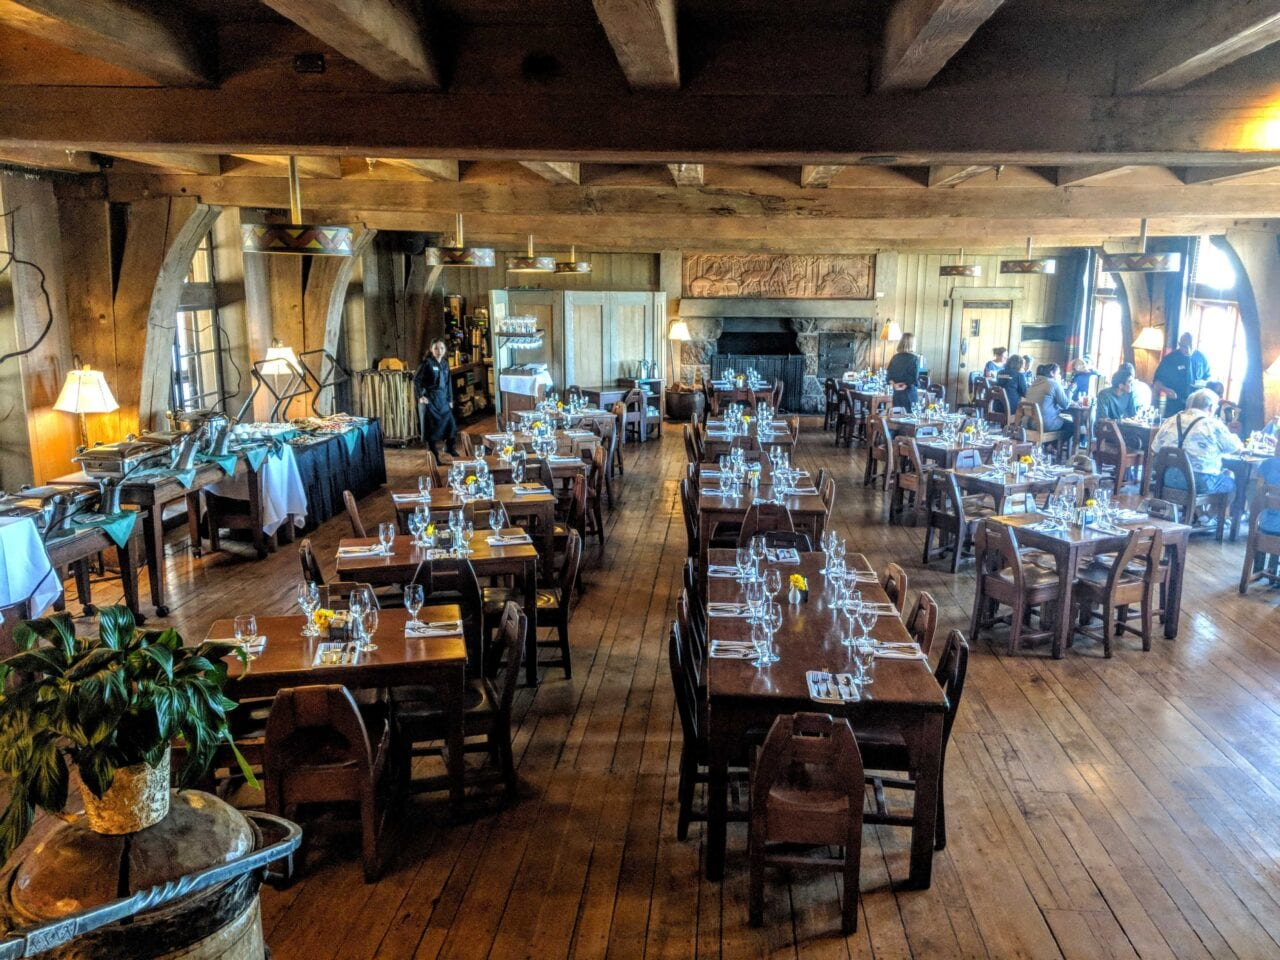 The inside of the Timberline Lodge Buffet on the PCT in Oregon.